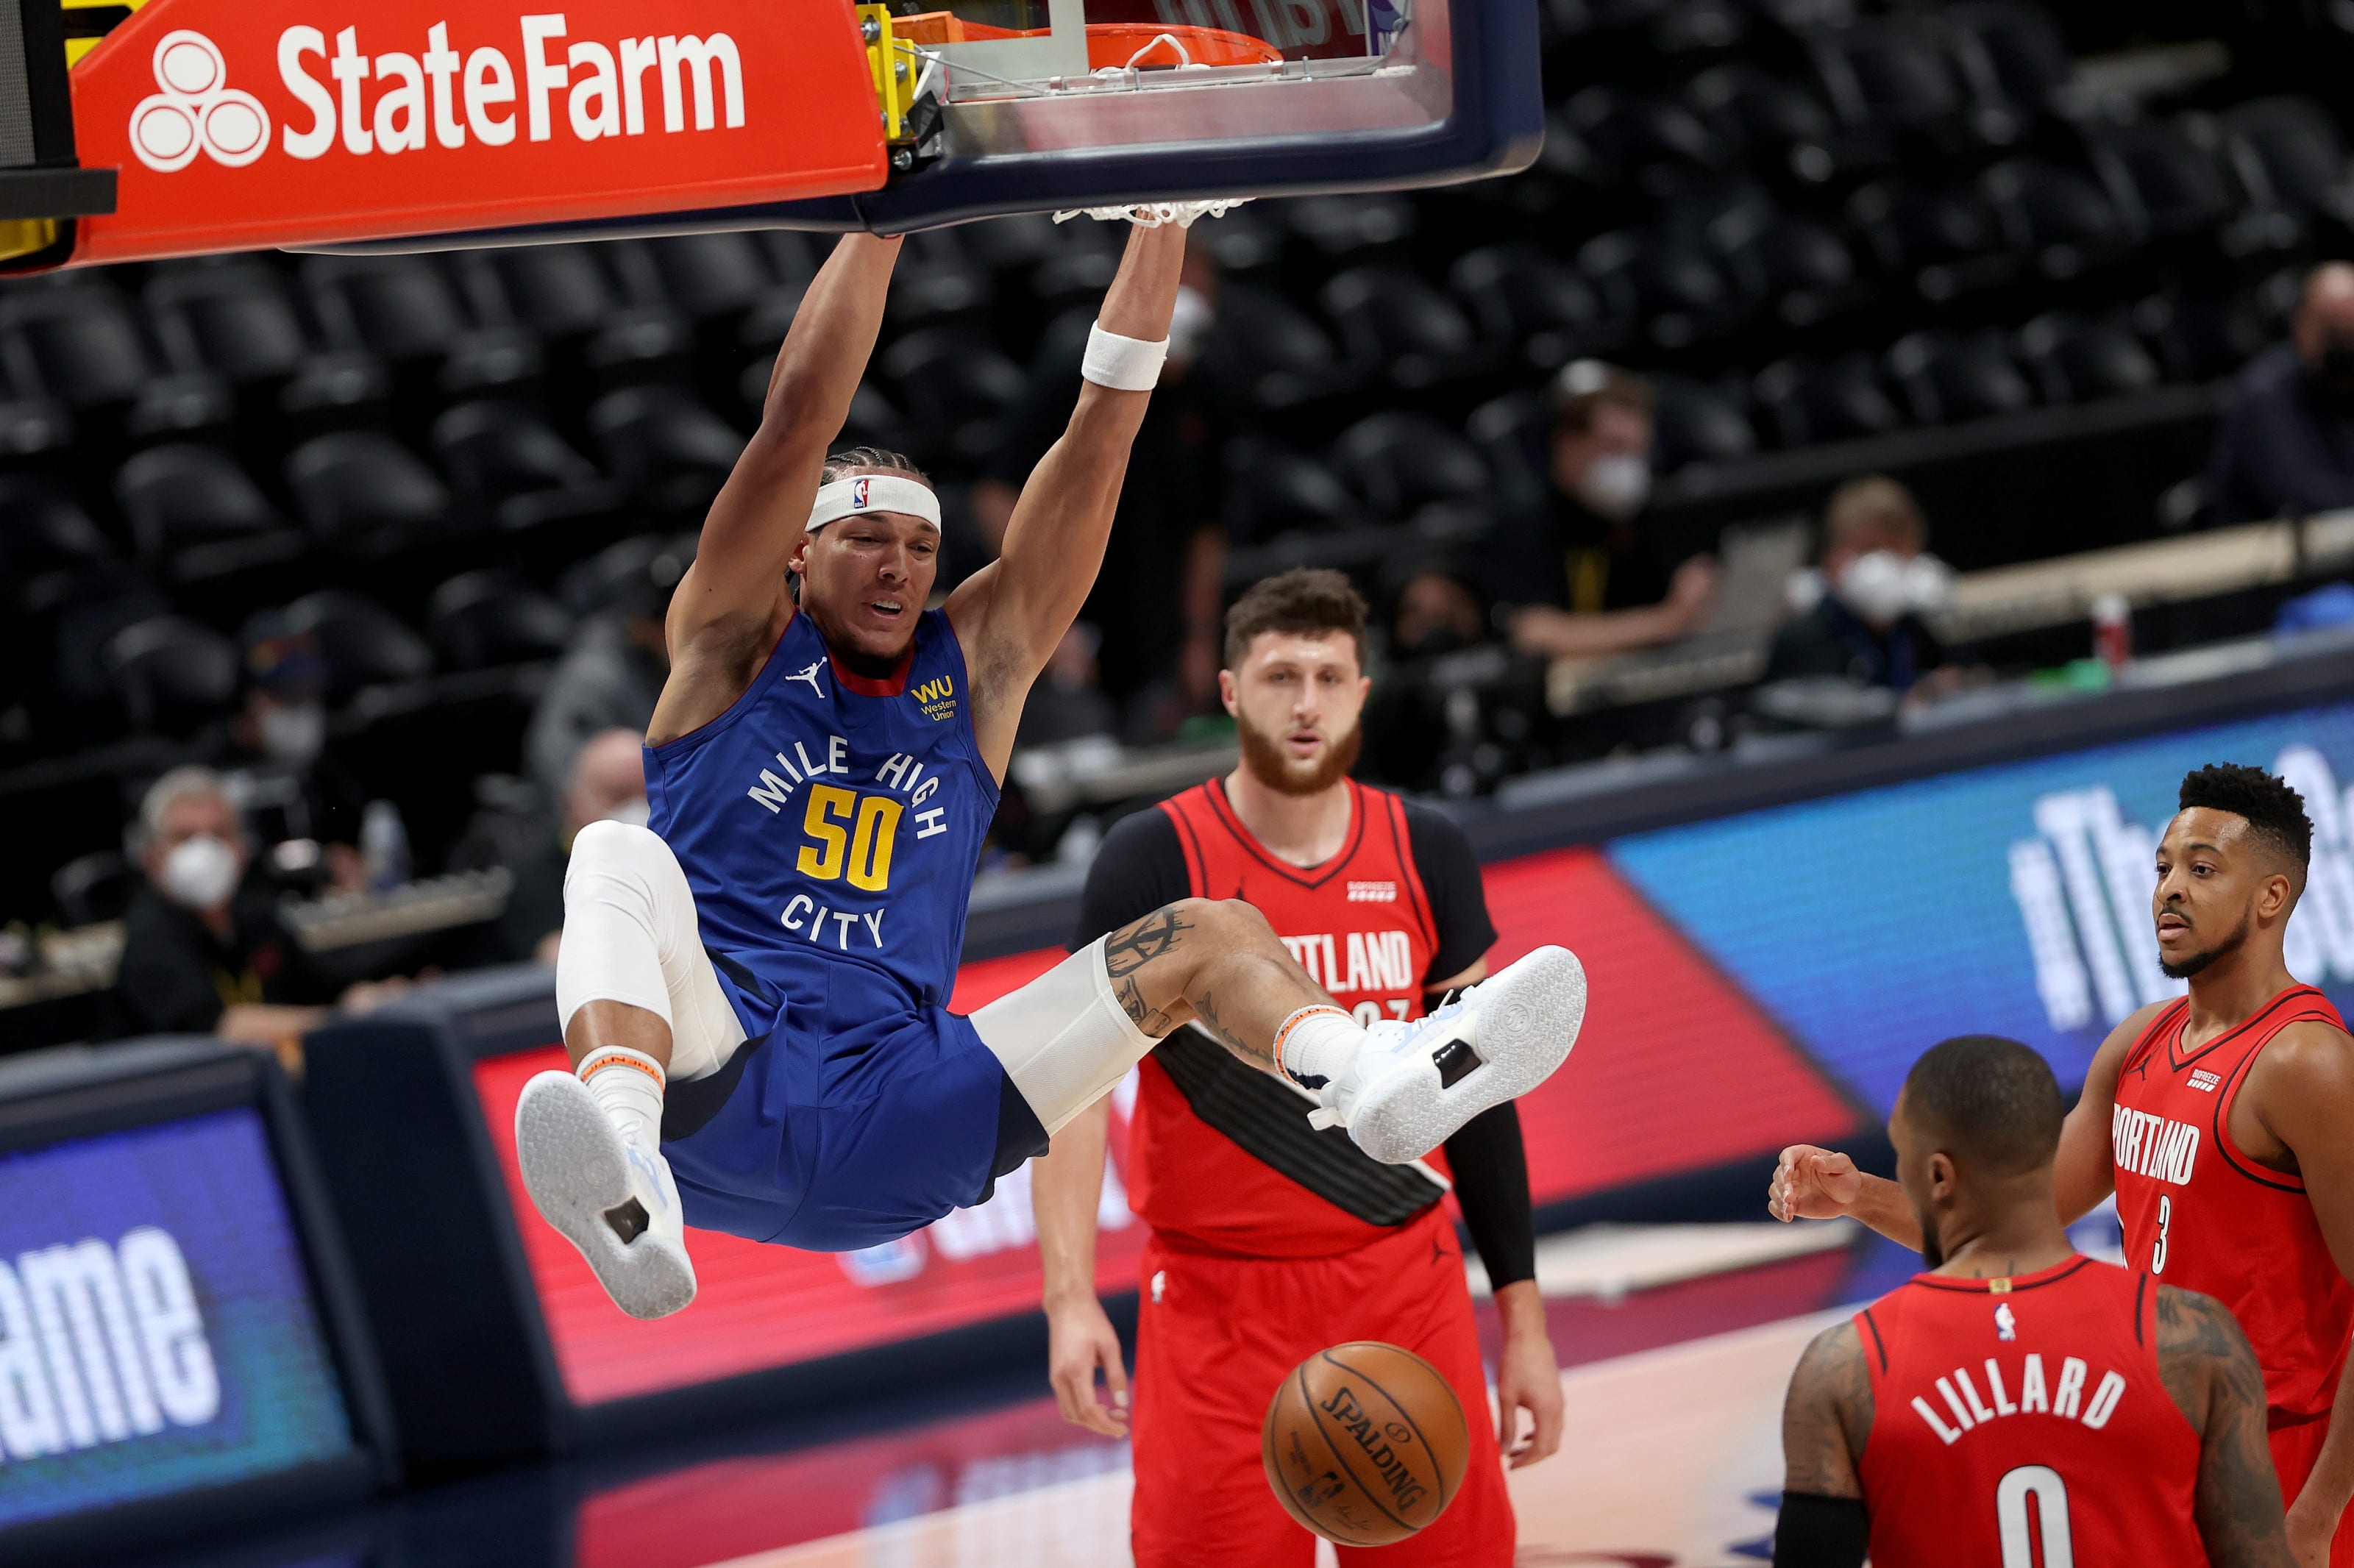 Aaron Gordon of the Denver Nuggets dunks the ball against the Portland Trail Blazers in the first quarter during Game 1 of their Western Conference first-round playoff series at Ball Arena on 22 May 2021. (Photo by Matthew Stockman/Getty Images)